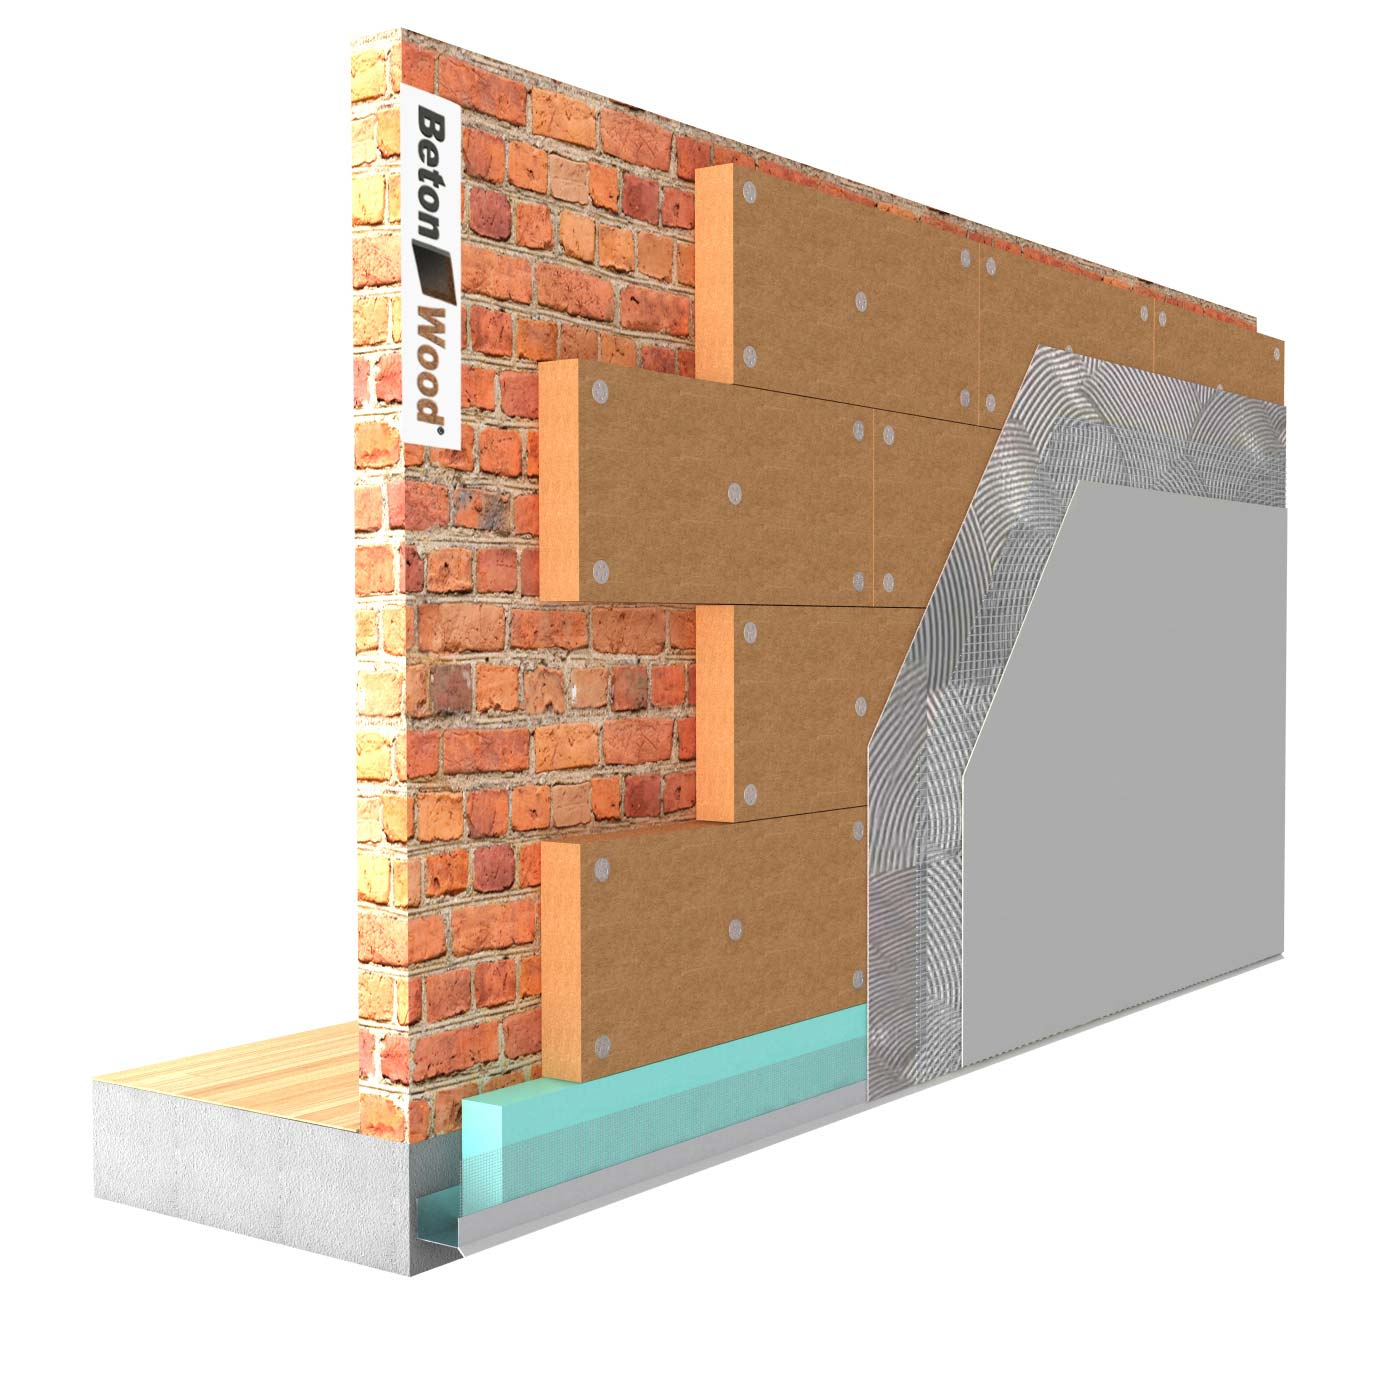 External thermal insulation system in Protect dry Fiber Wood